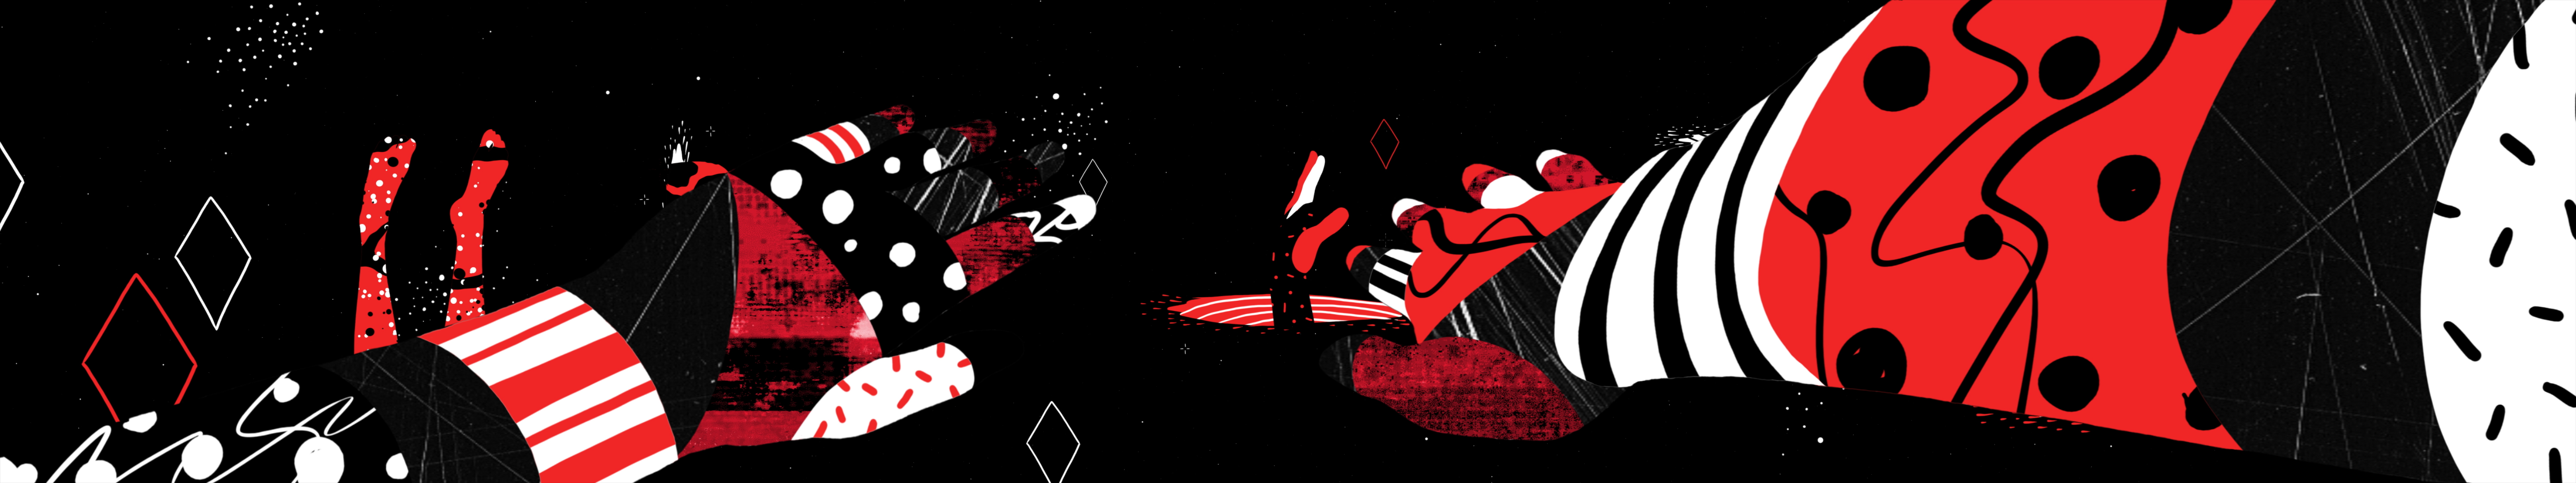 A red, black and white animated hand reaches out.